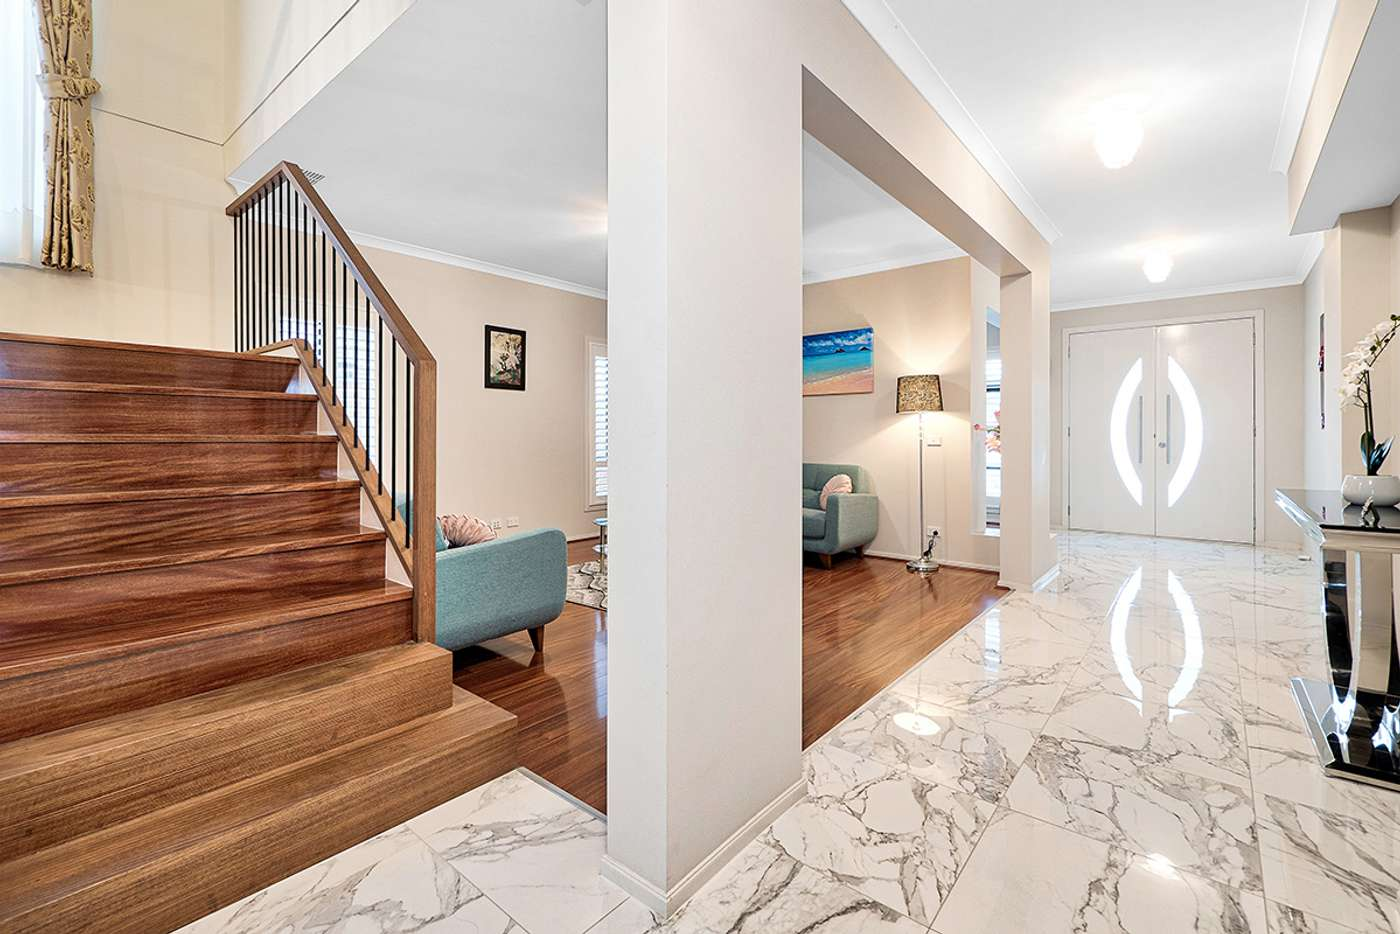 Fifth view of Homely house listing, 23 Lamada Street, Lyndhurst VIC 3975